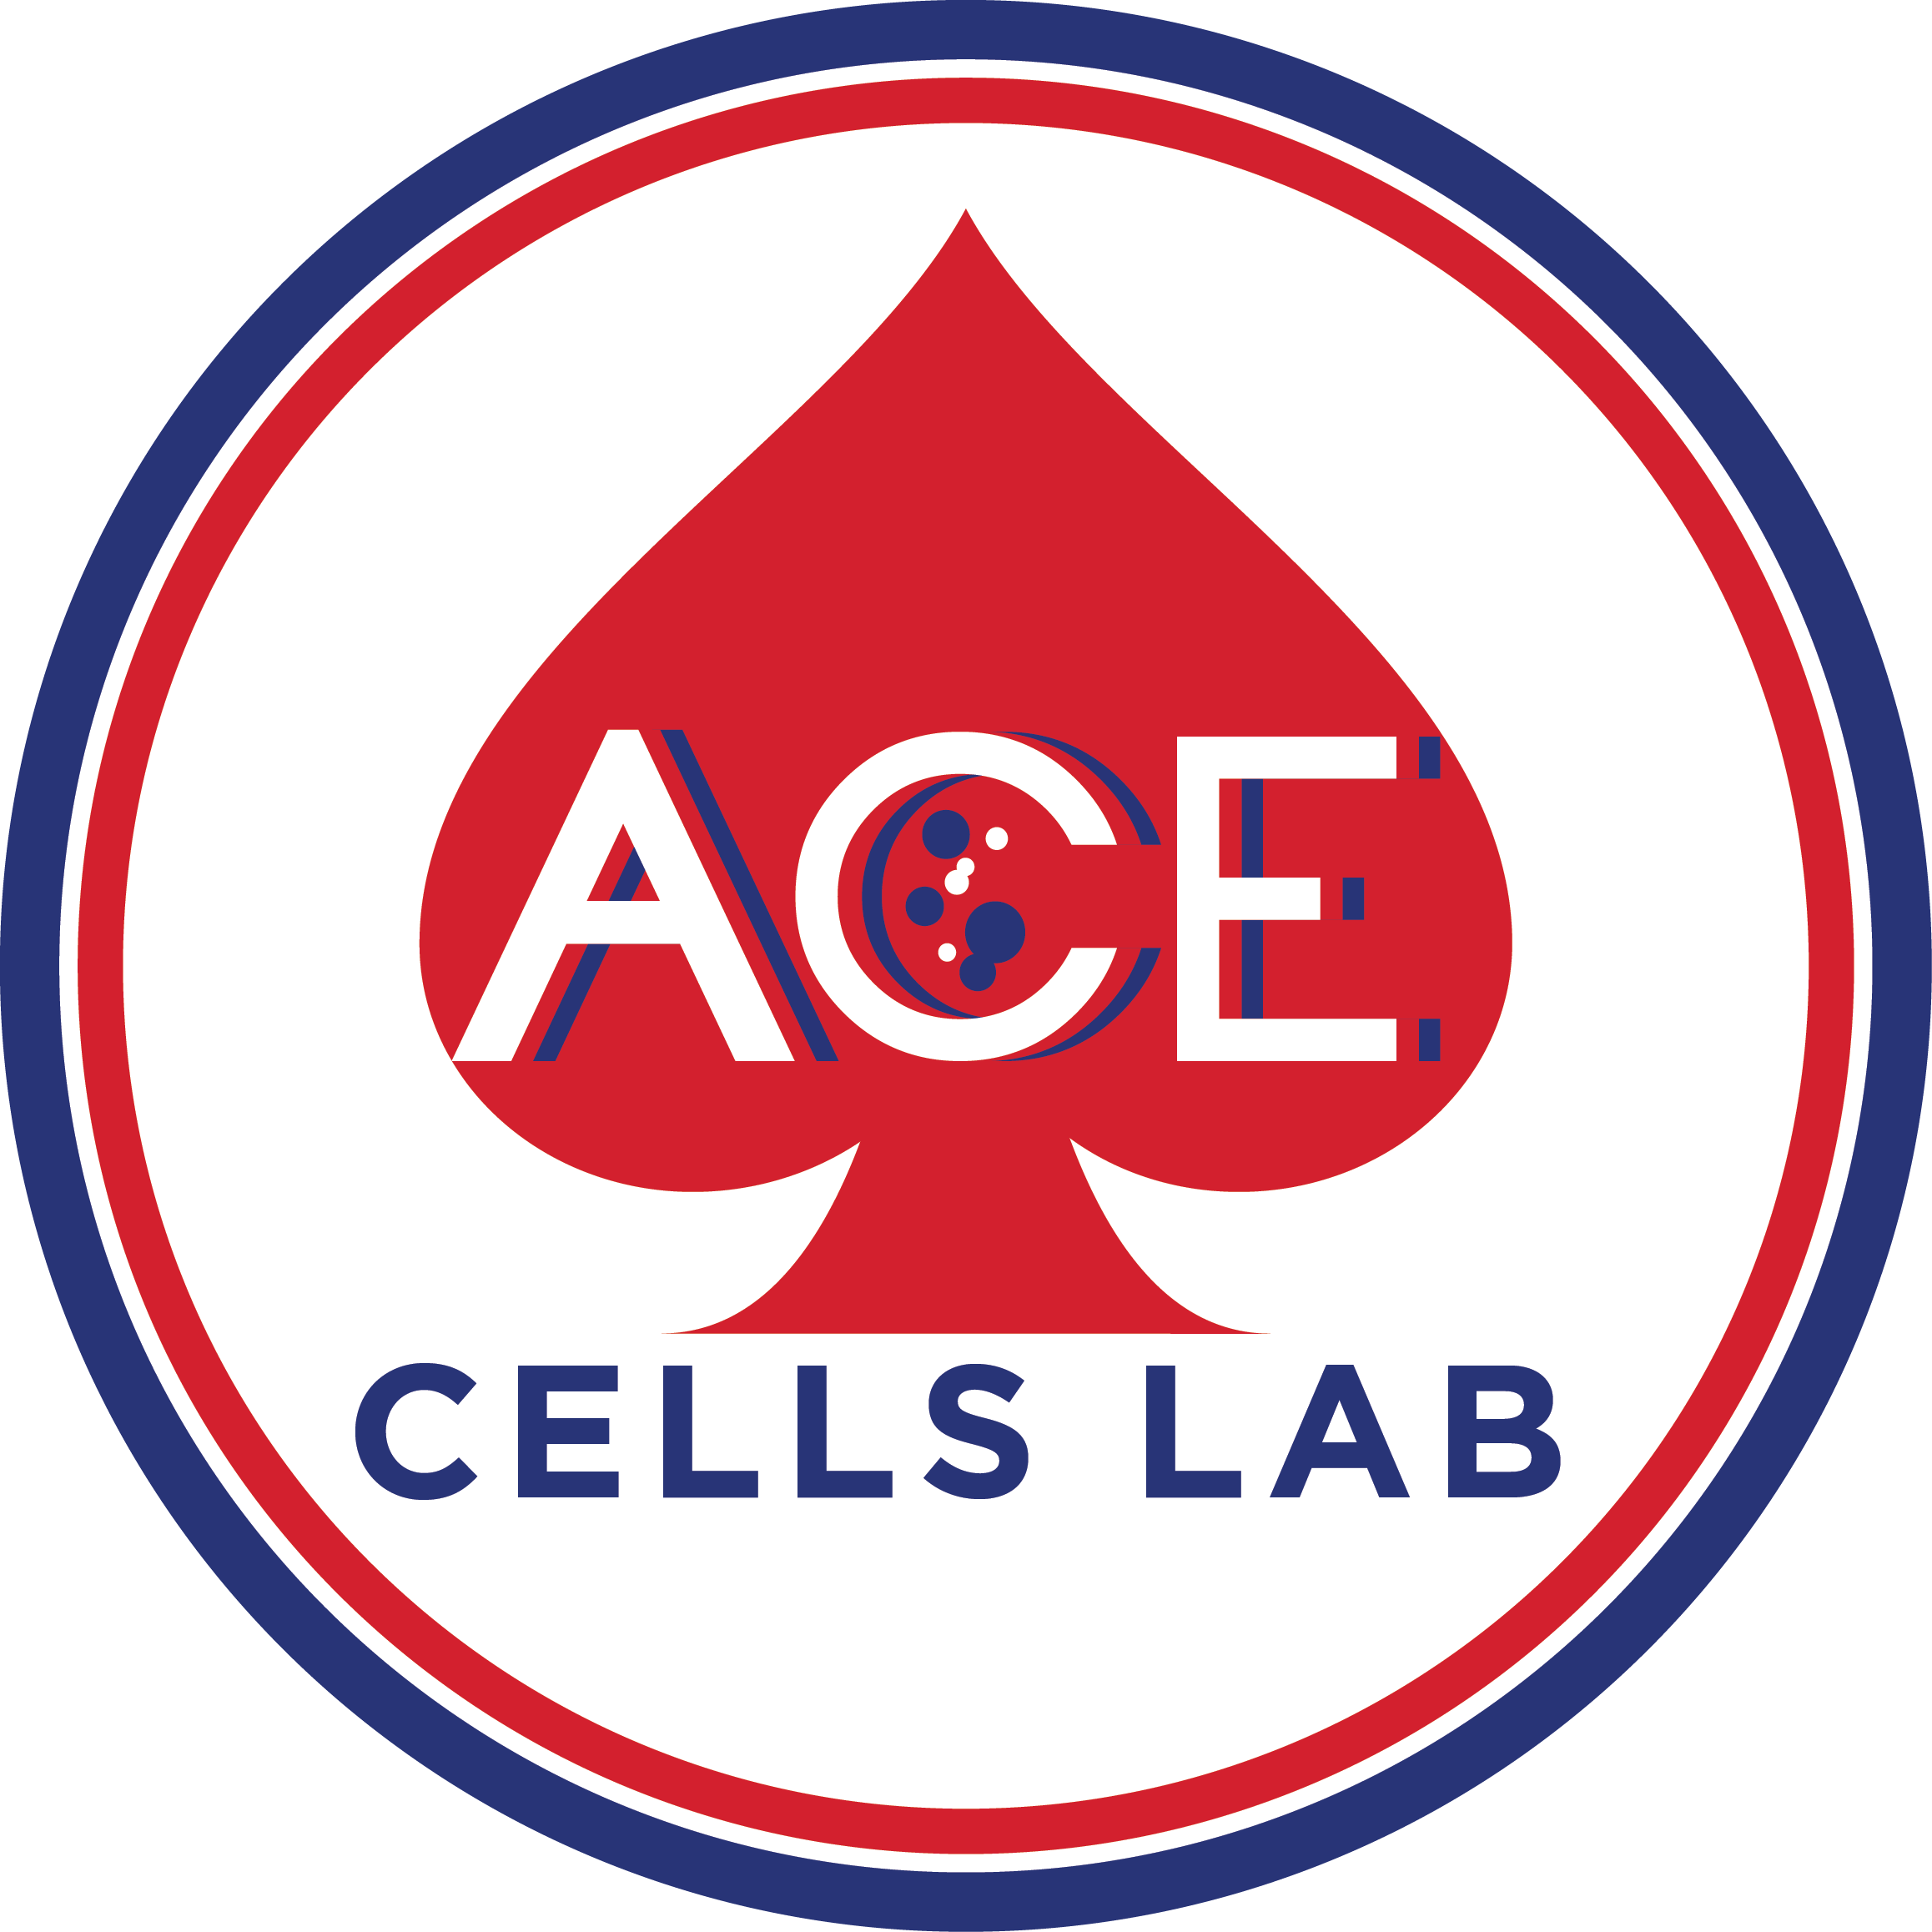 ACE Cells Lab Limited